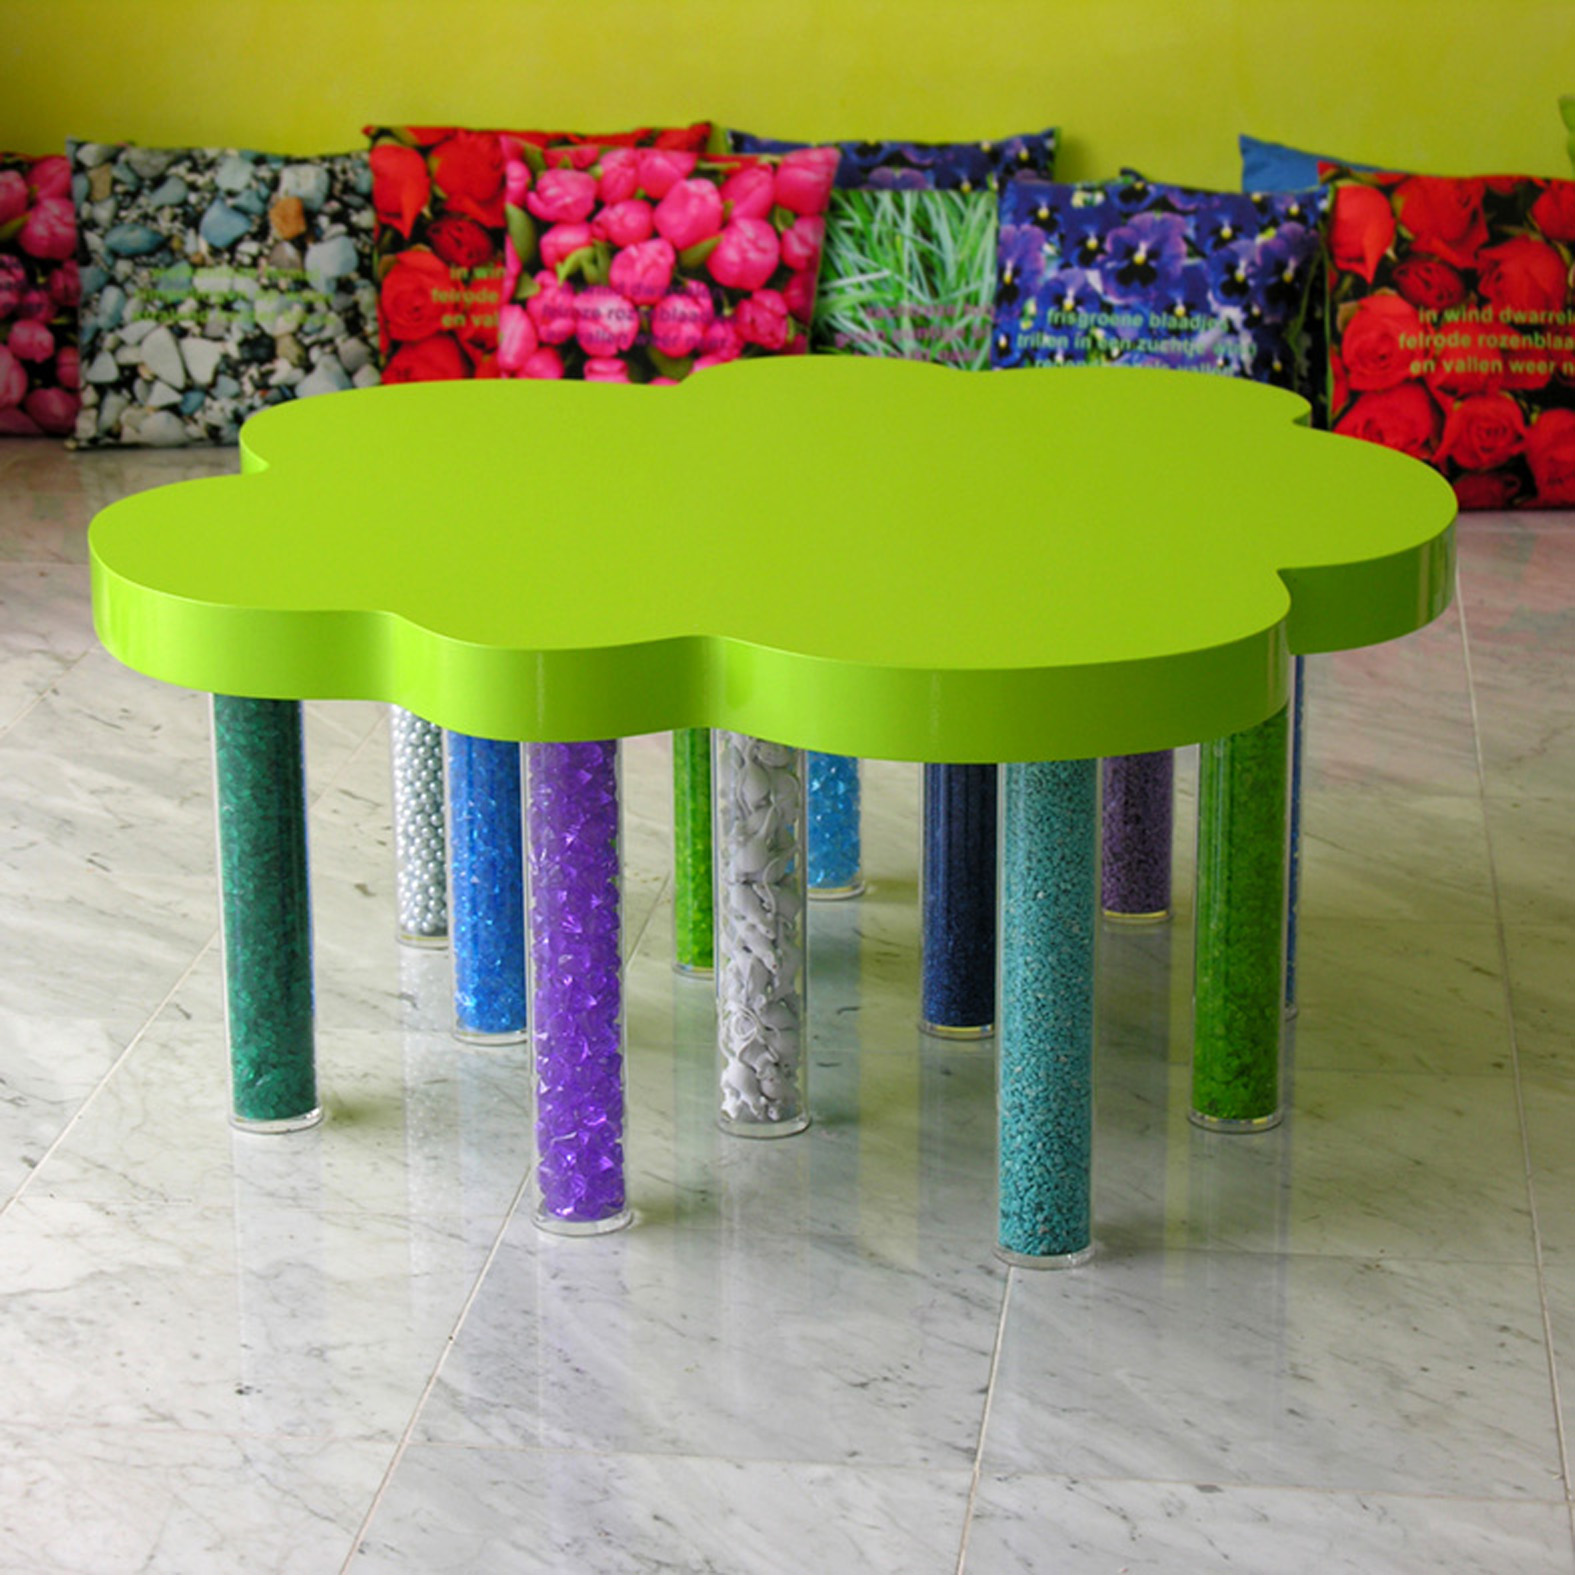 table large green OK 200